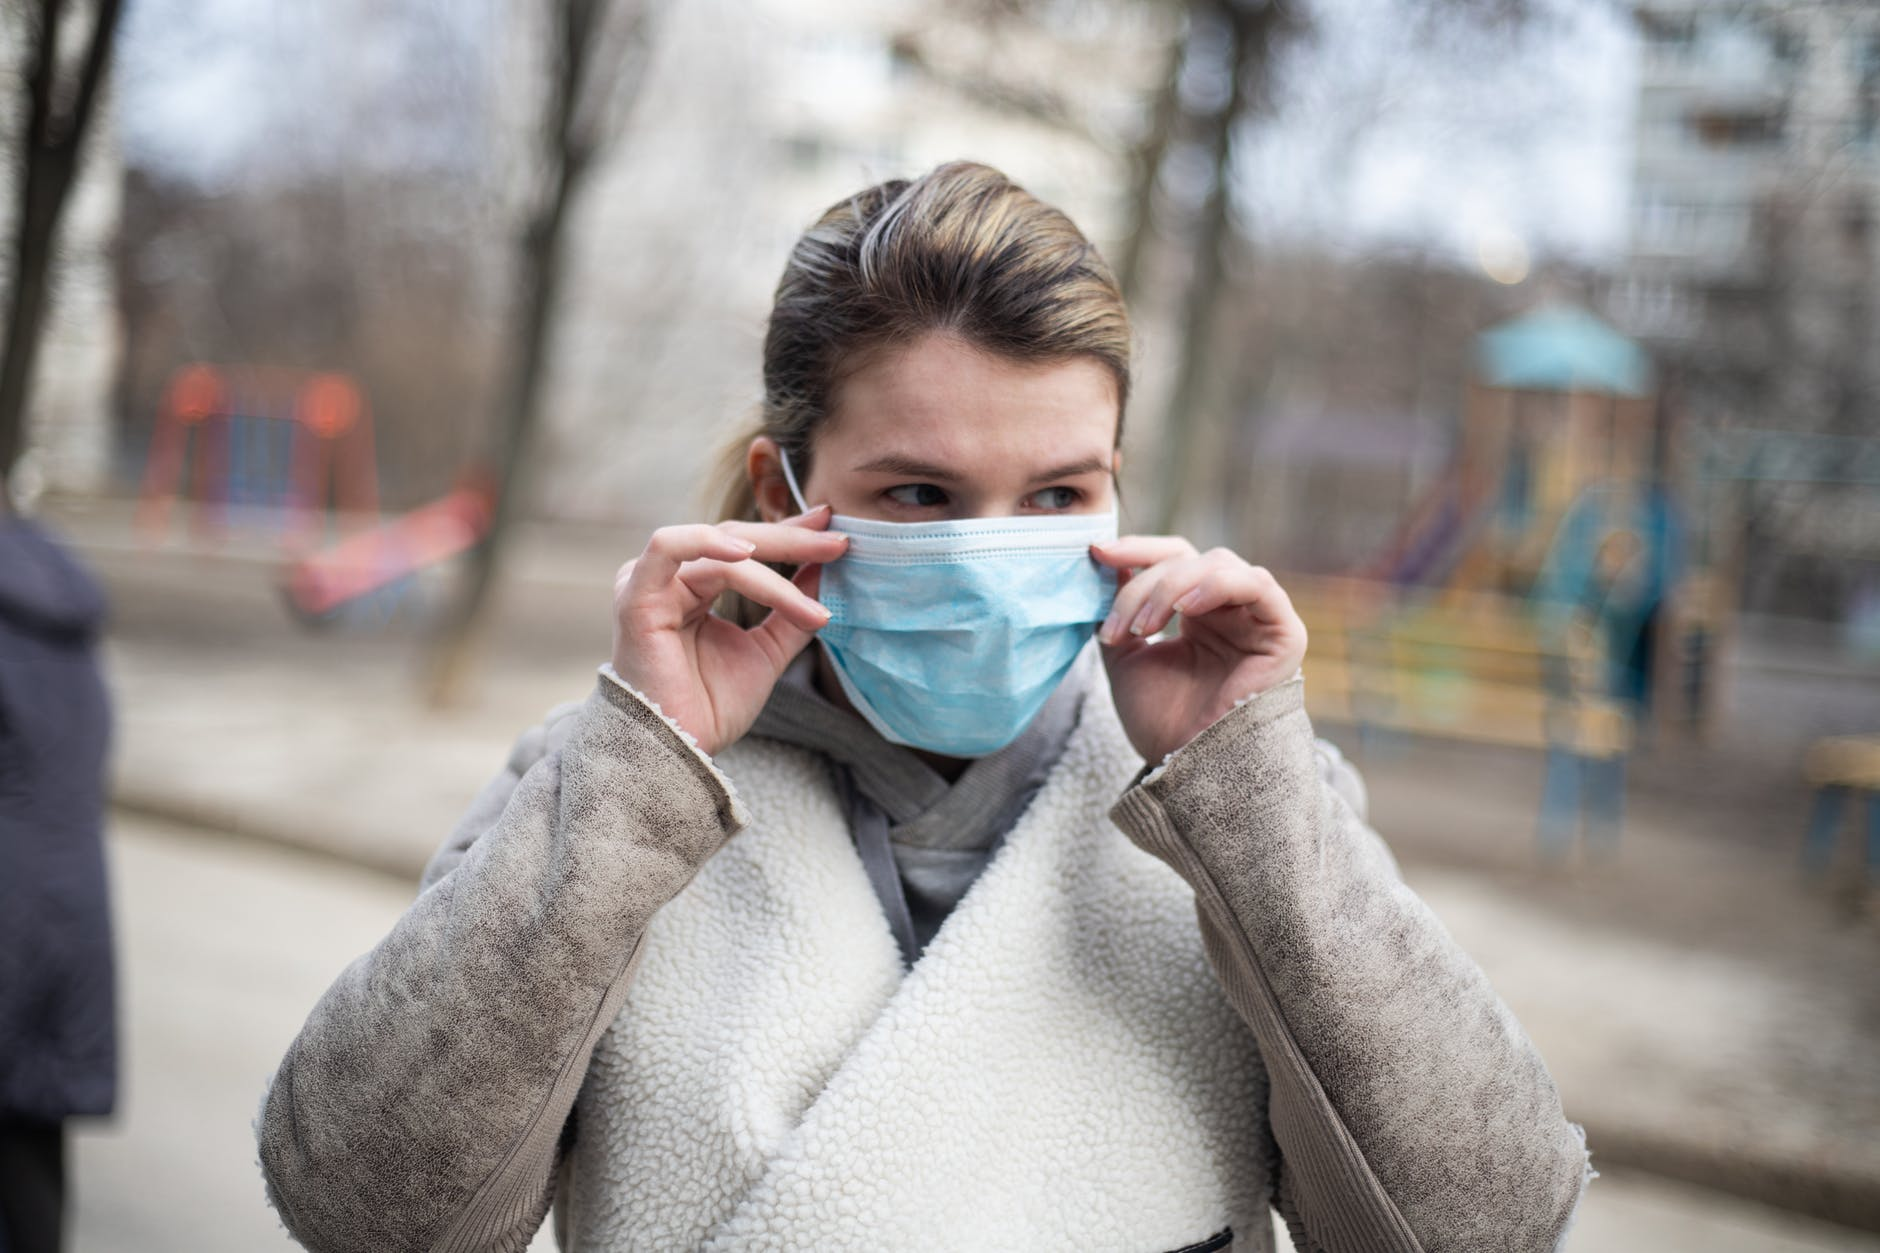 Wearing a Mask during the pandemic